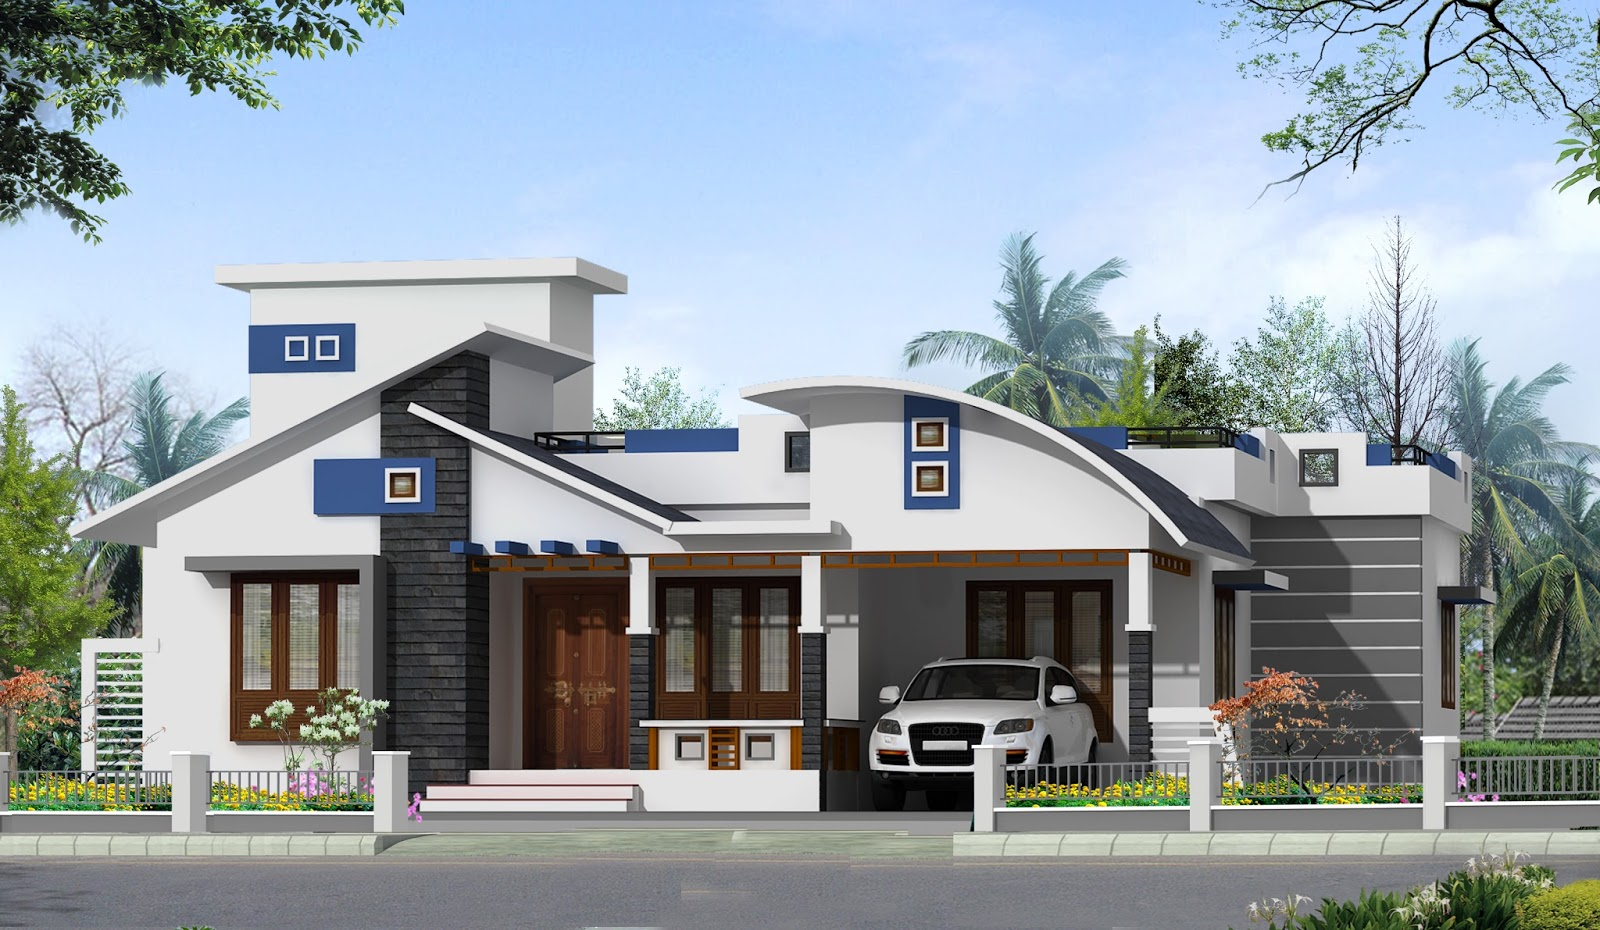 House Designs: New home designs latest: modern house ...